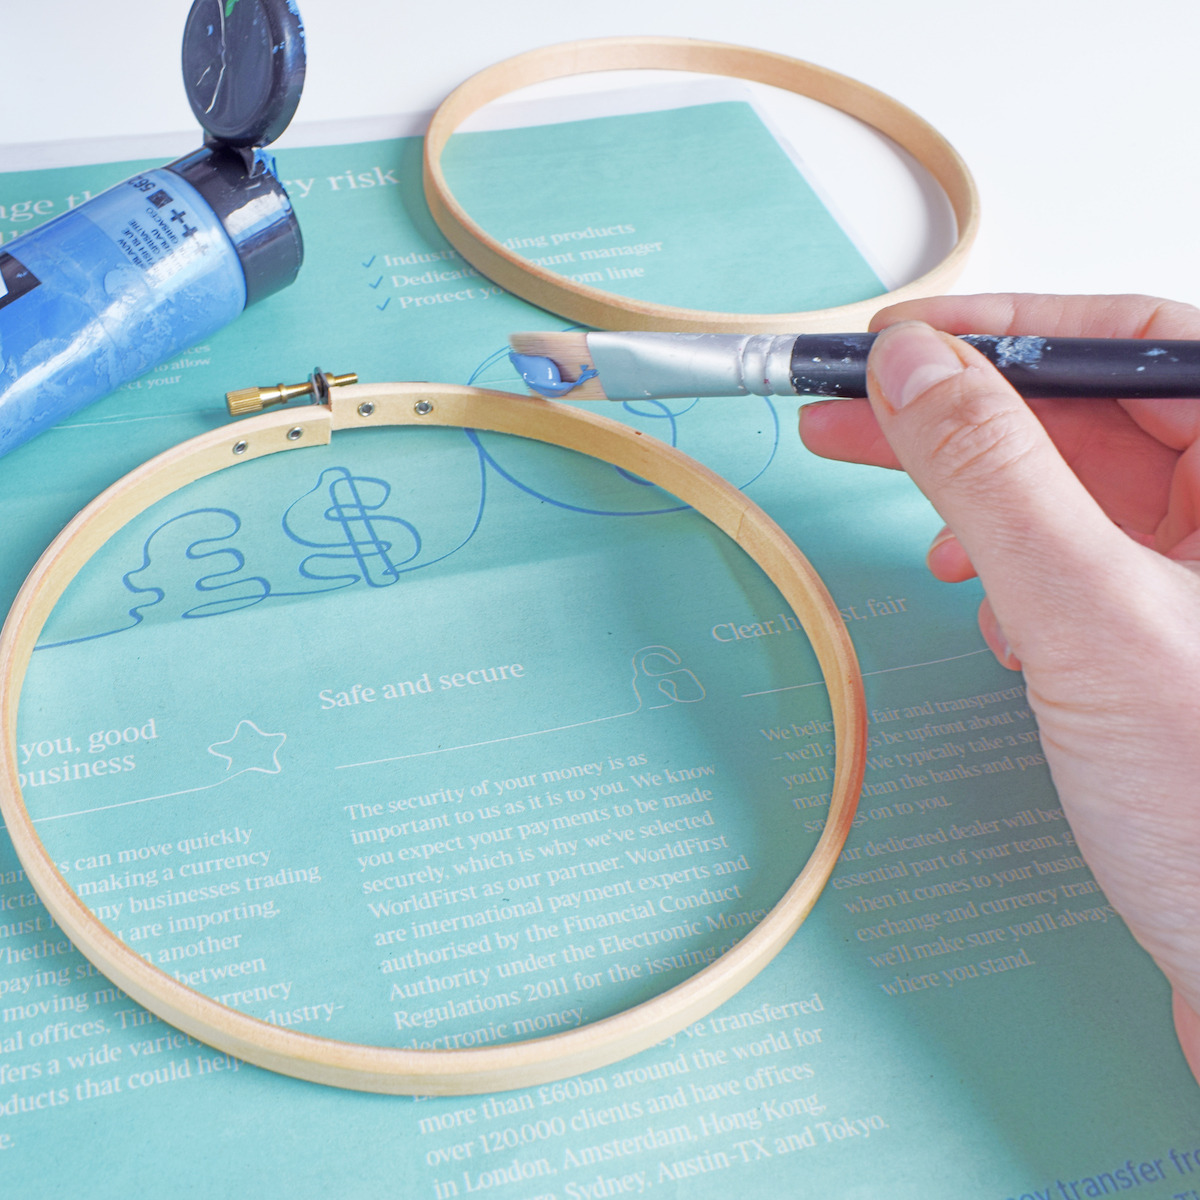 How to paint your embroidery hoop